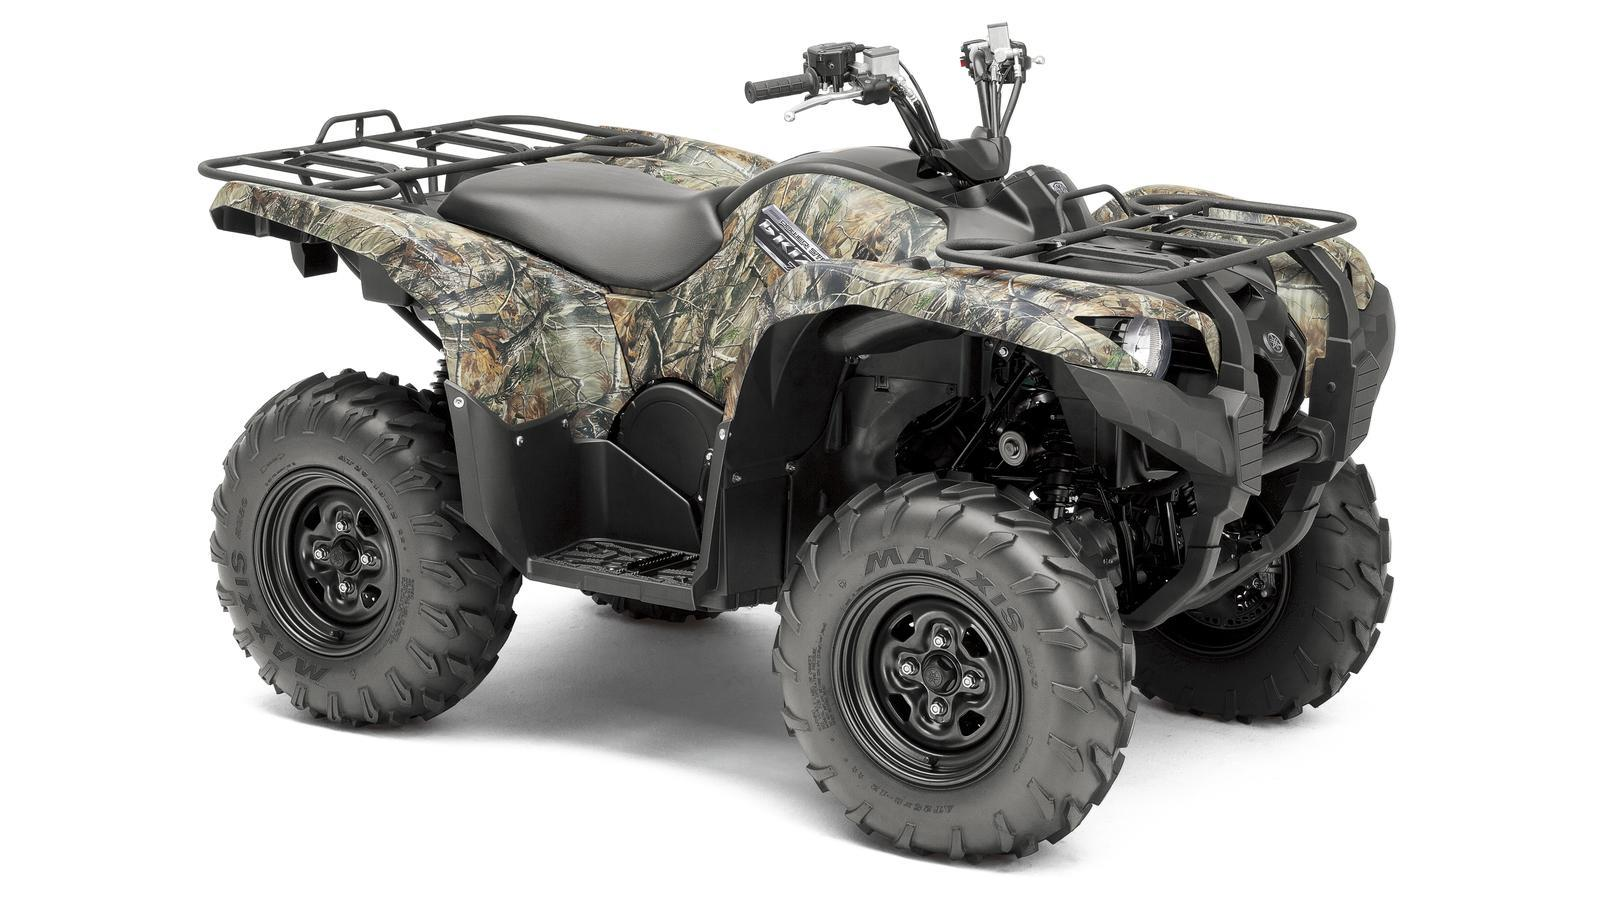 Мотоцикл Yamaha GRIZZLY 700 EPS SE 2013